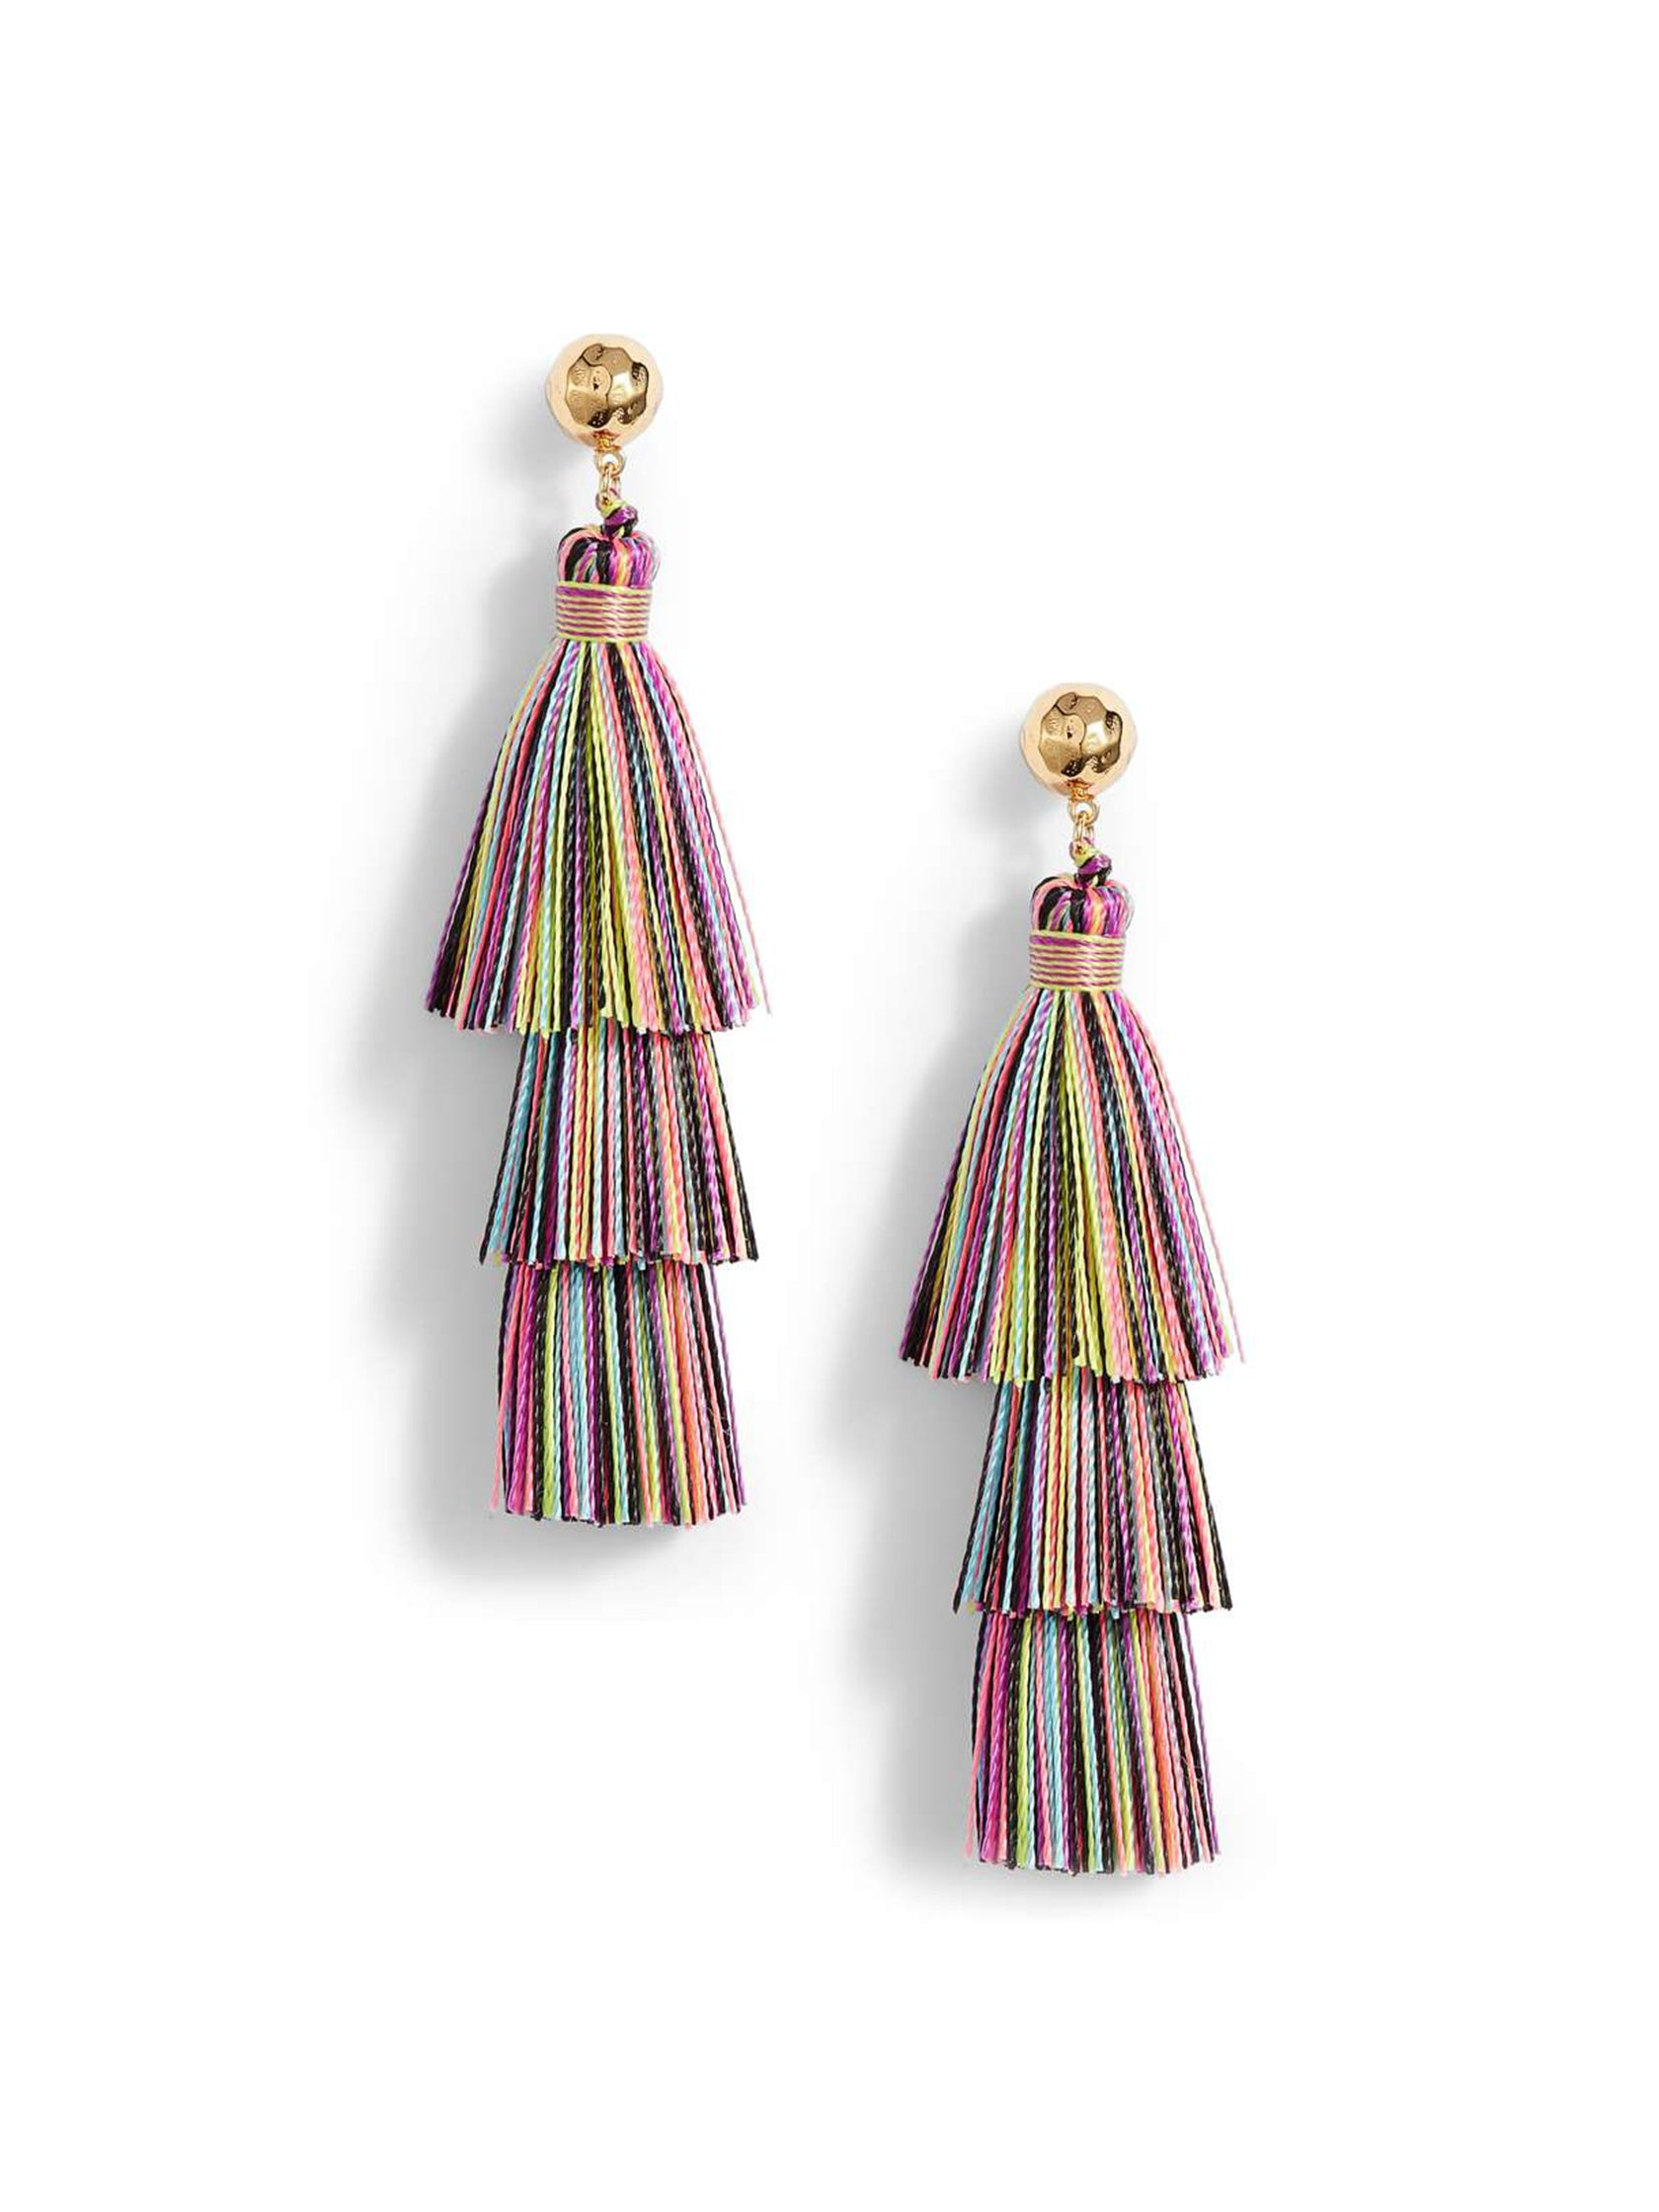 Girl wearing a earrings rental from Gorjana called Havana Tassel Earrings